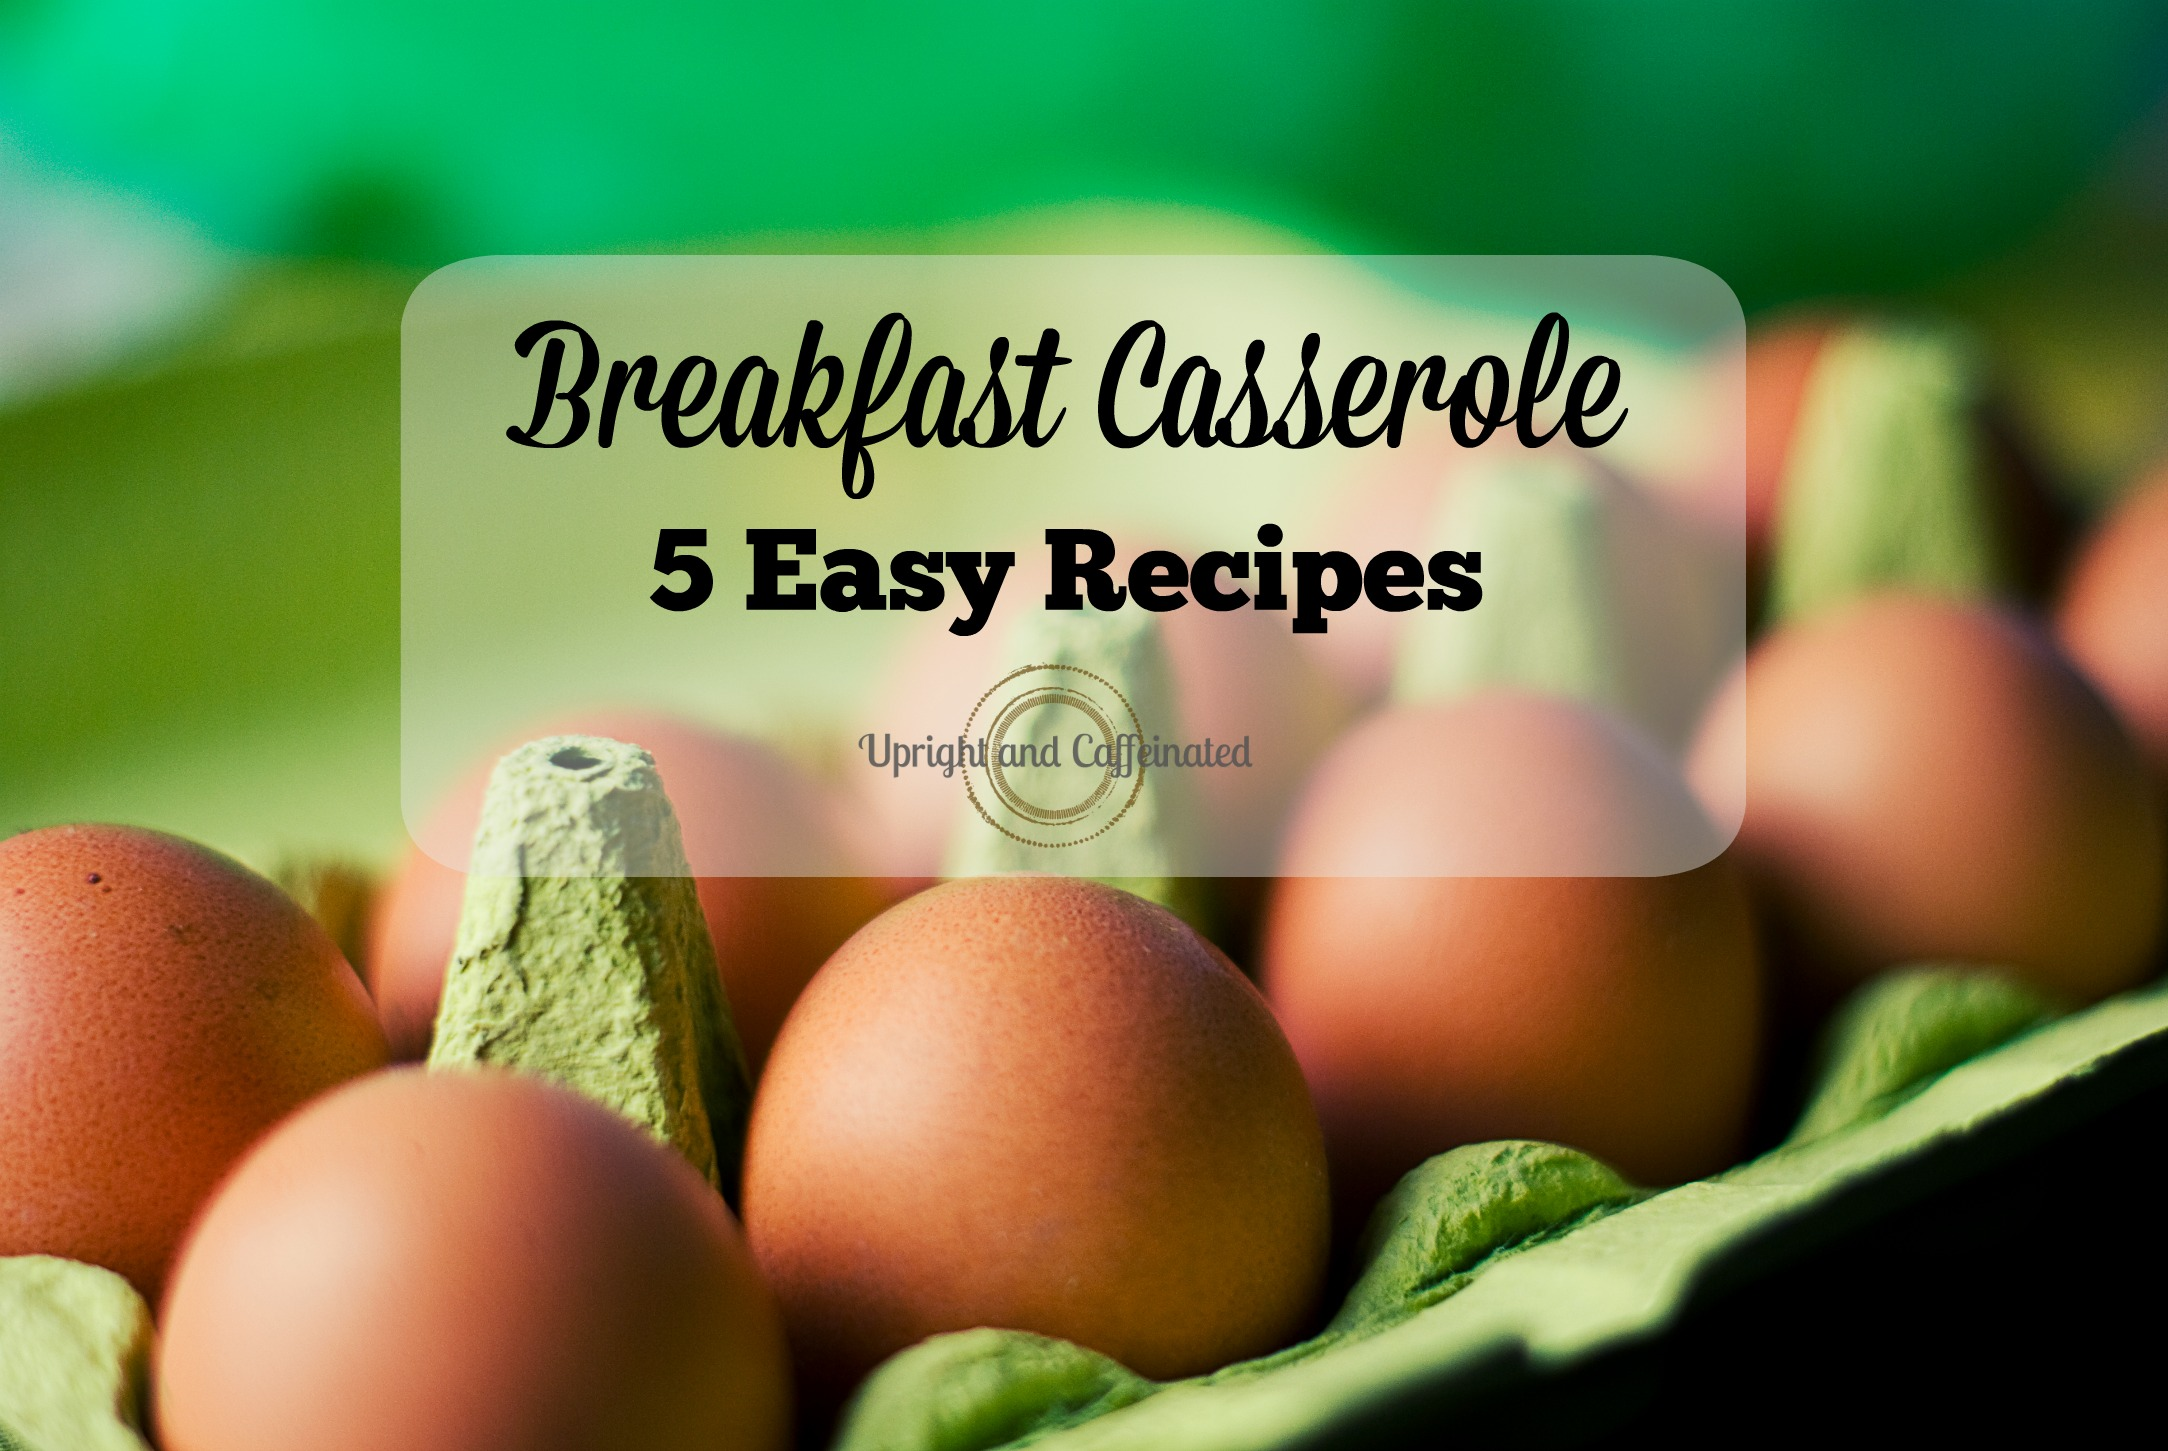 Breakfast Casserole: 5 Easy Recipes